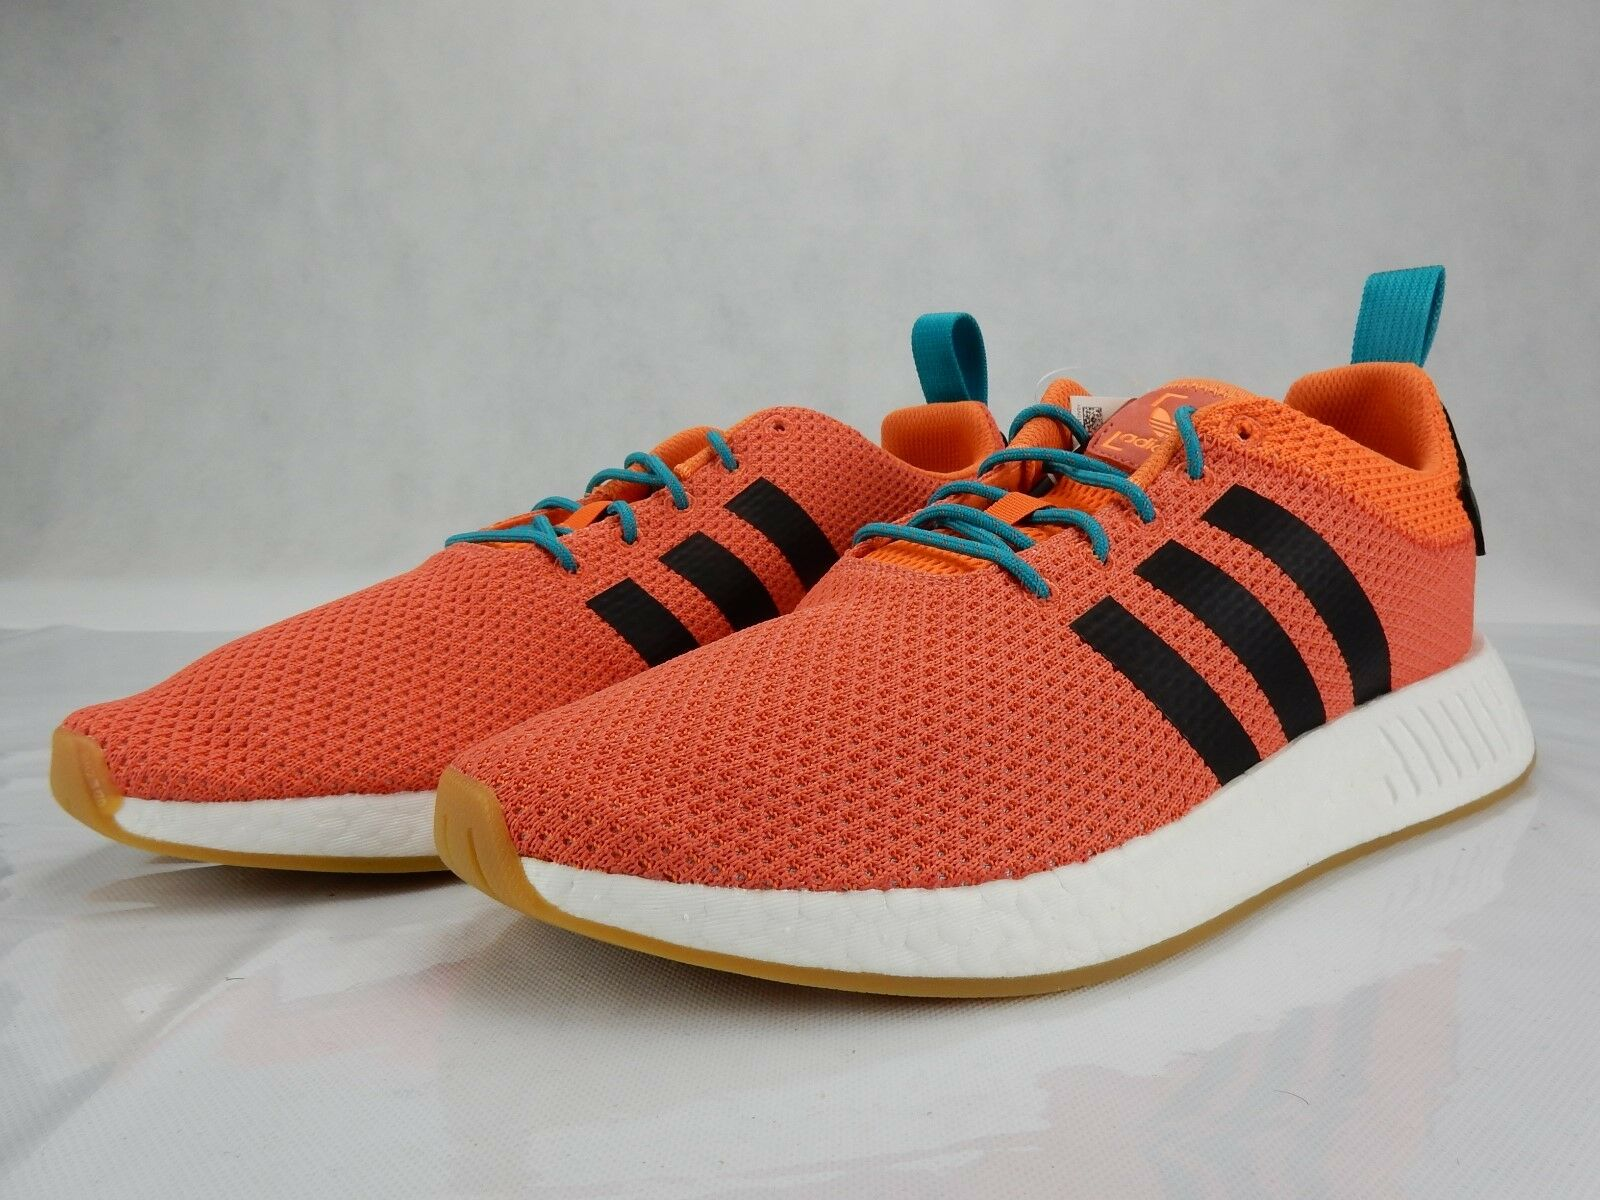 Adidas NMD_R2 Summer Spice Orange CQ3081 Mens S Shoes Size 12.5 New Sneakers